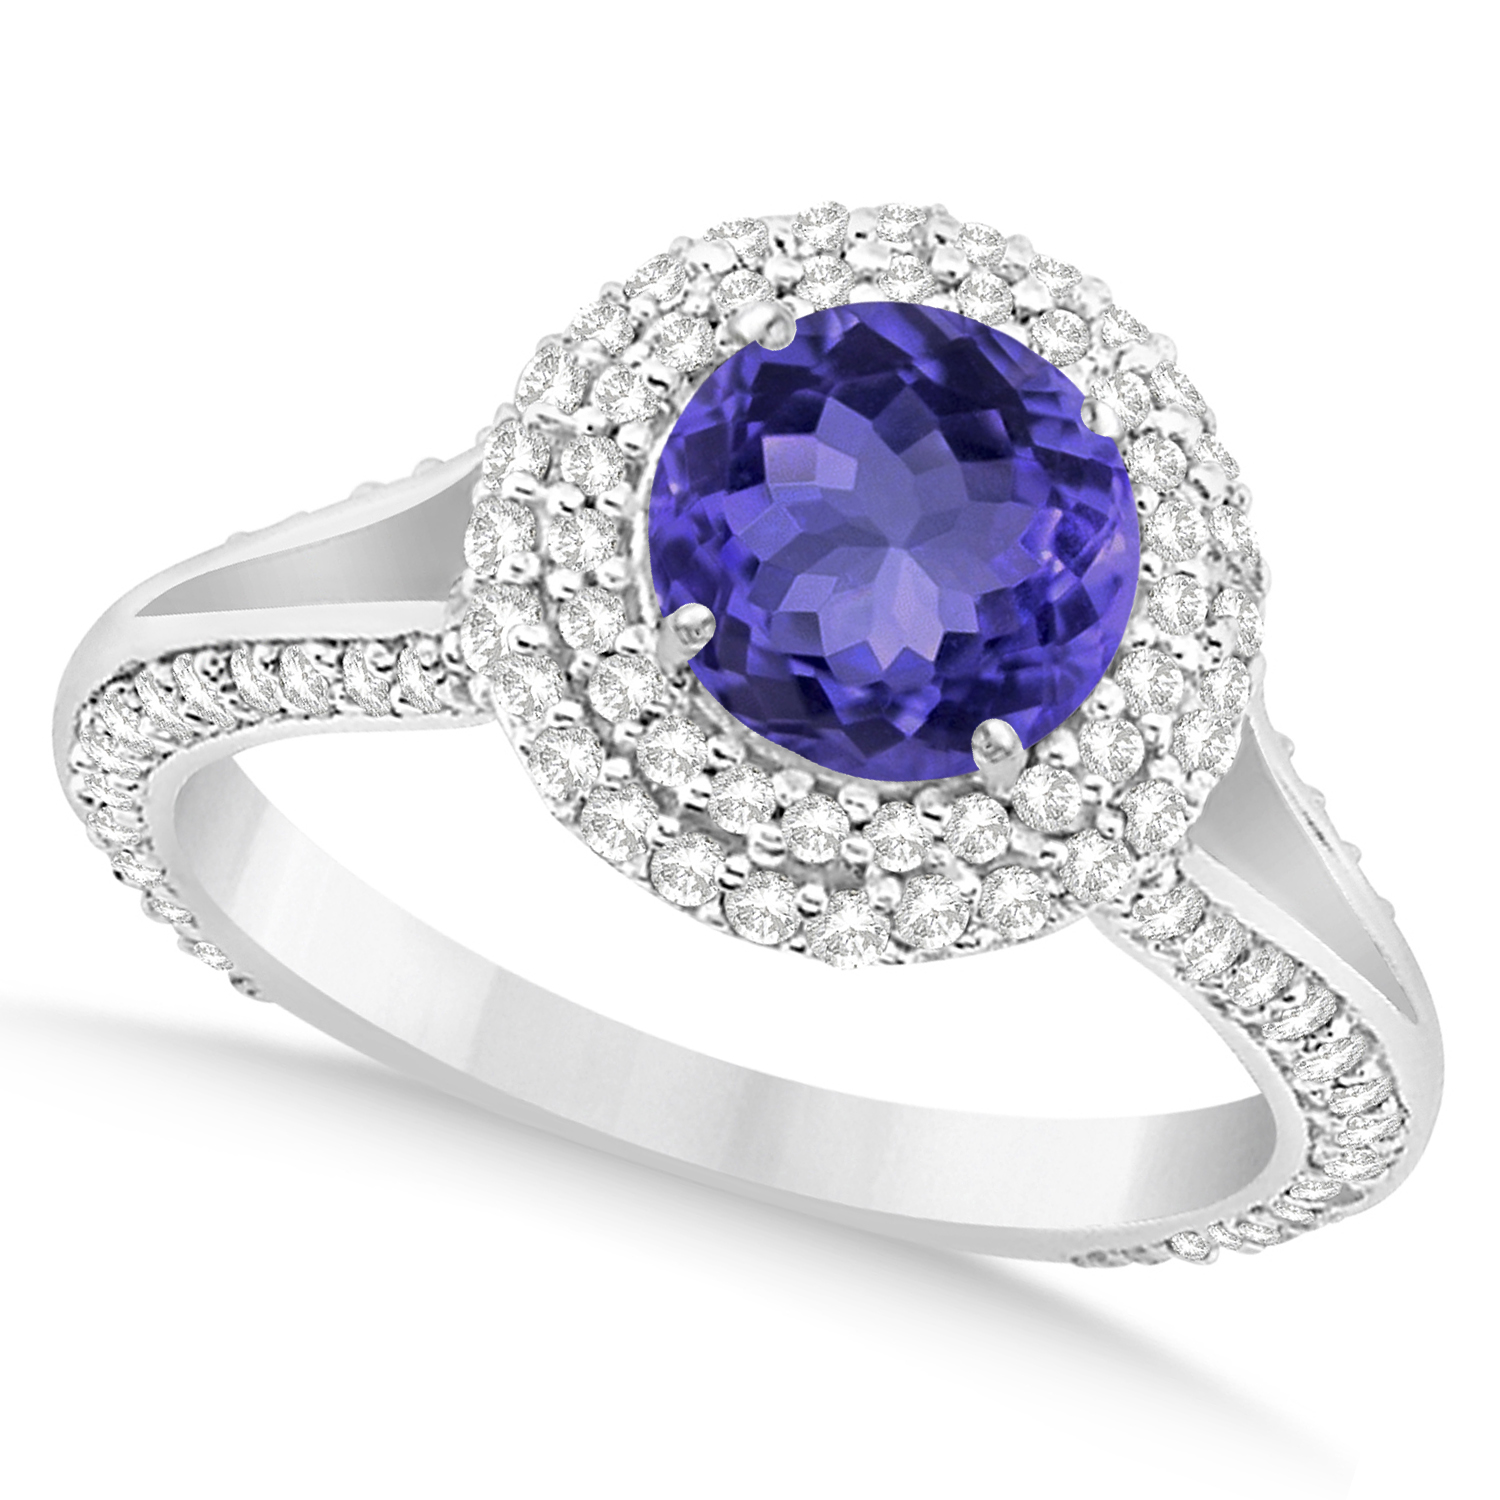 halo tanzanite diamond engagement ring 14k white gold 2. Black Bedroom Furniture Sets. Home Design Ideas